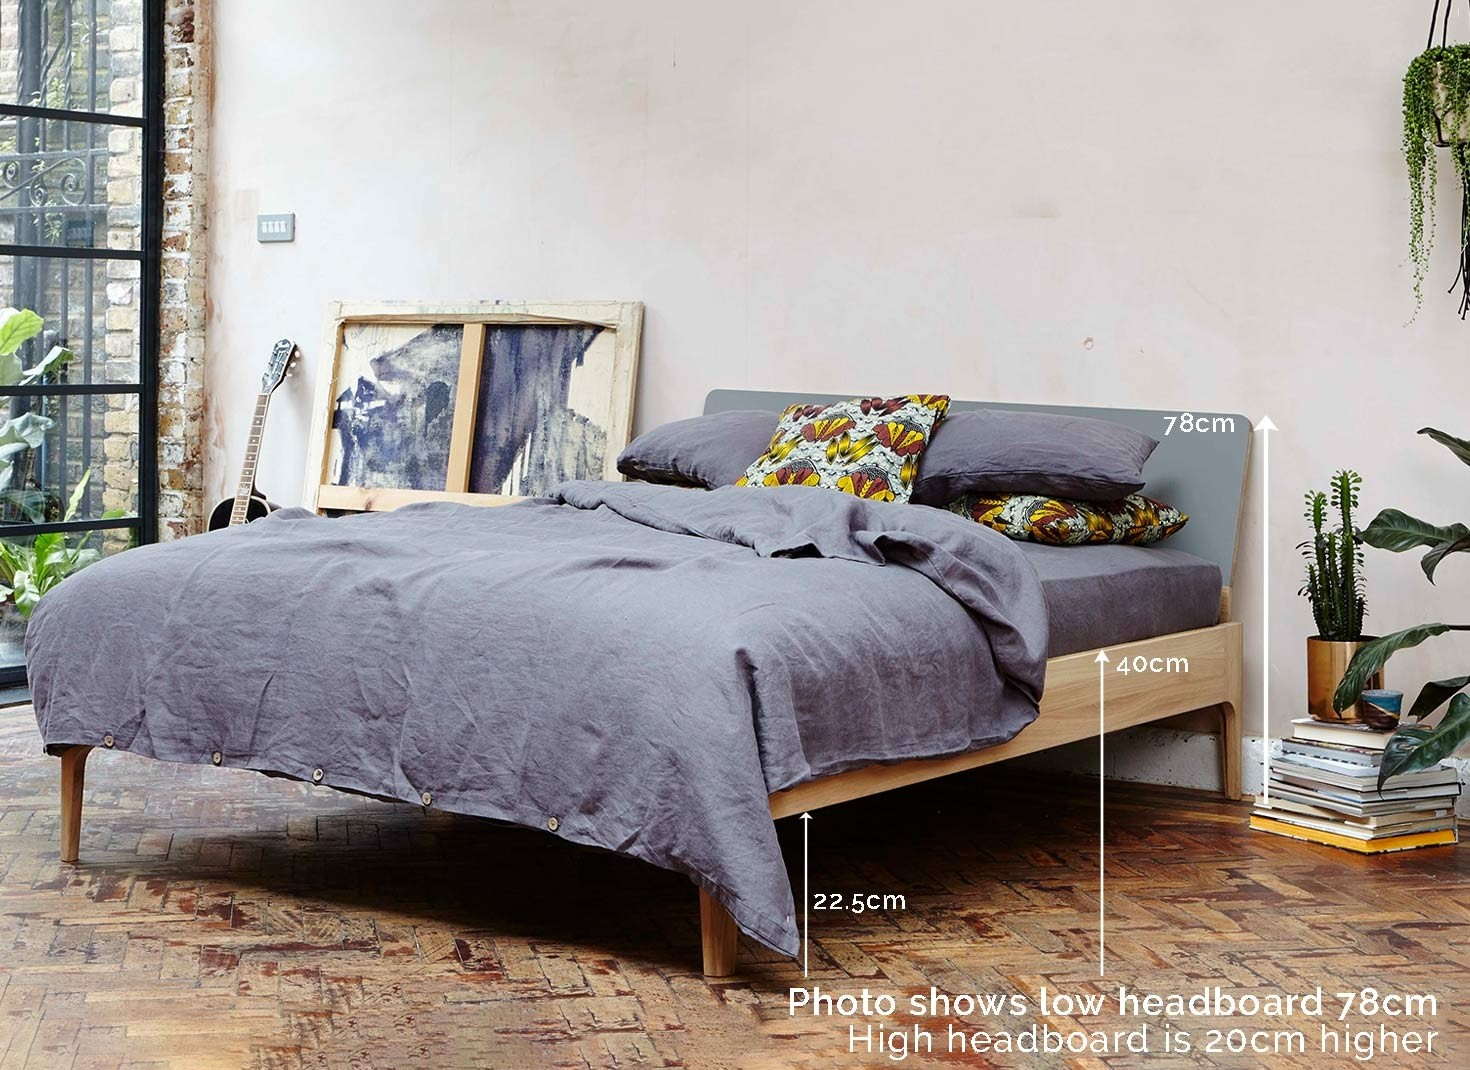 Como beds with Fenix headboard